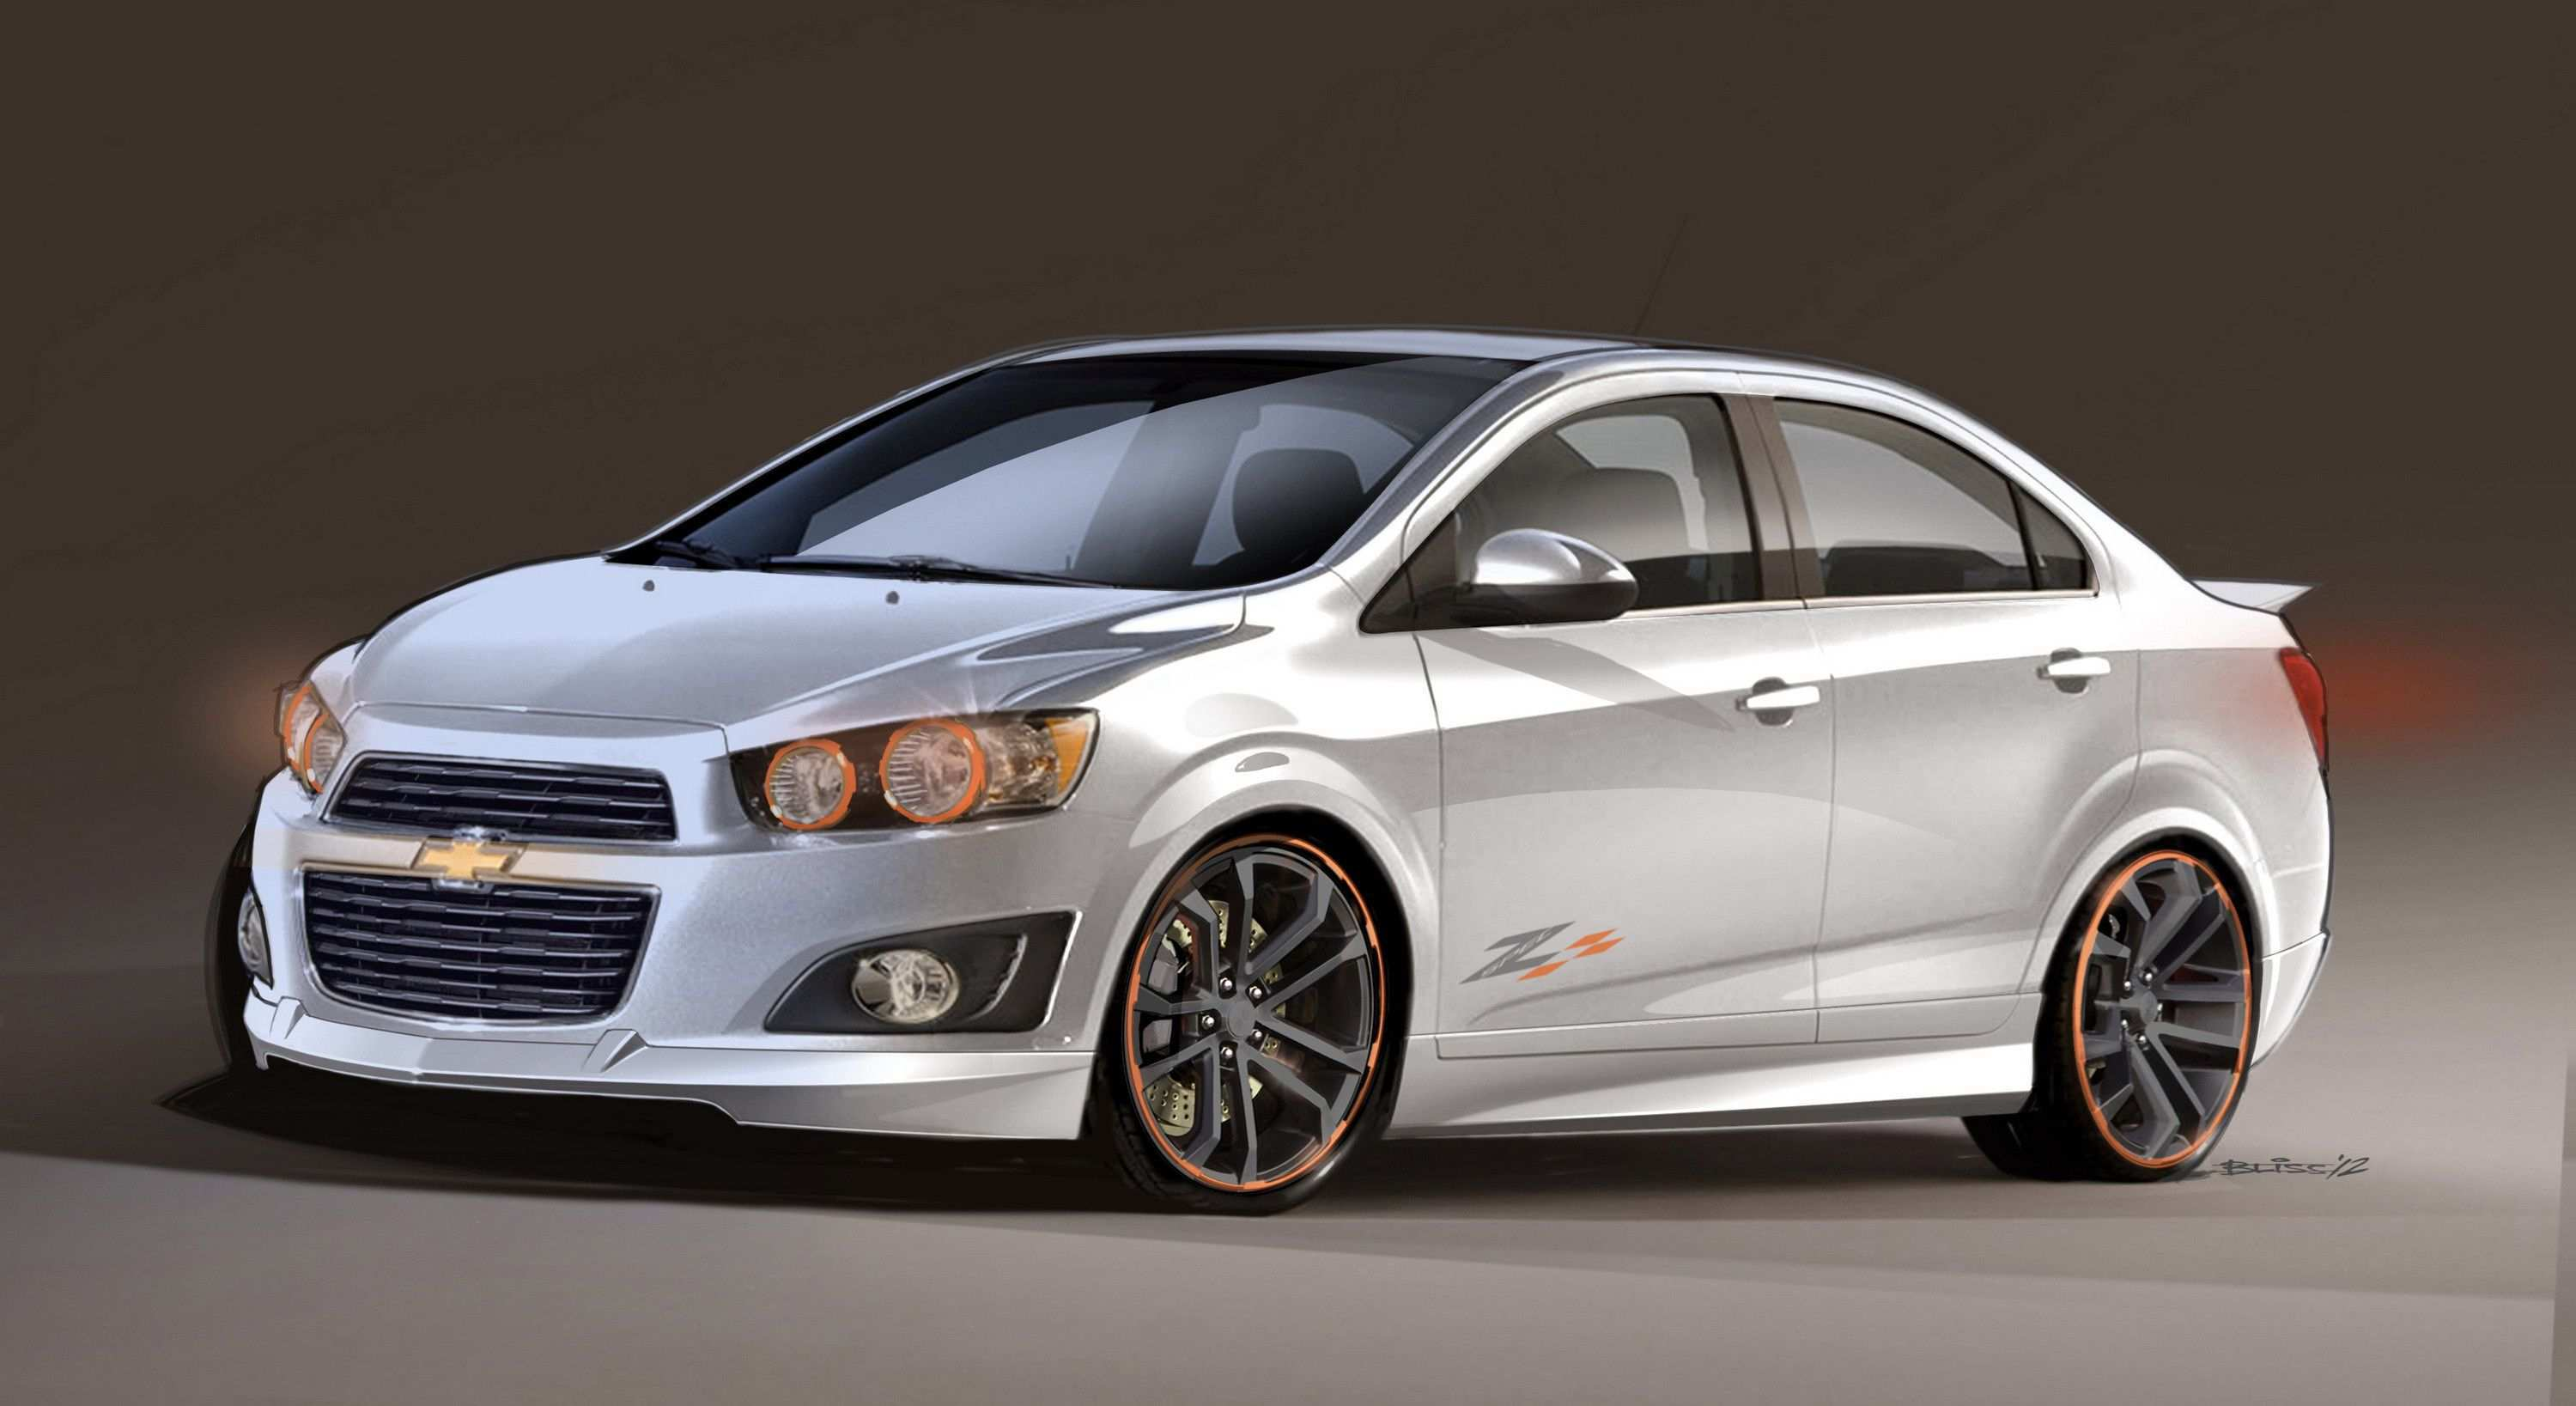 97 All New 2020 Chevy Sonic Wallpaper for 2020 Chevy Sonic